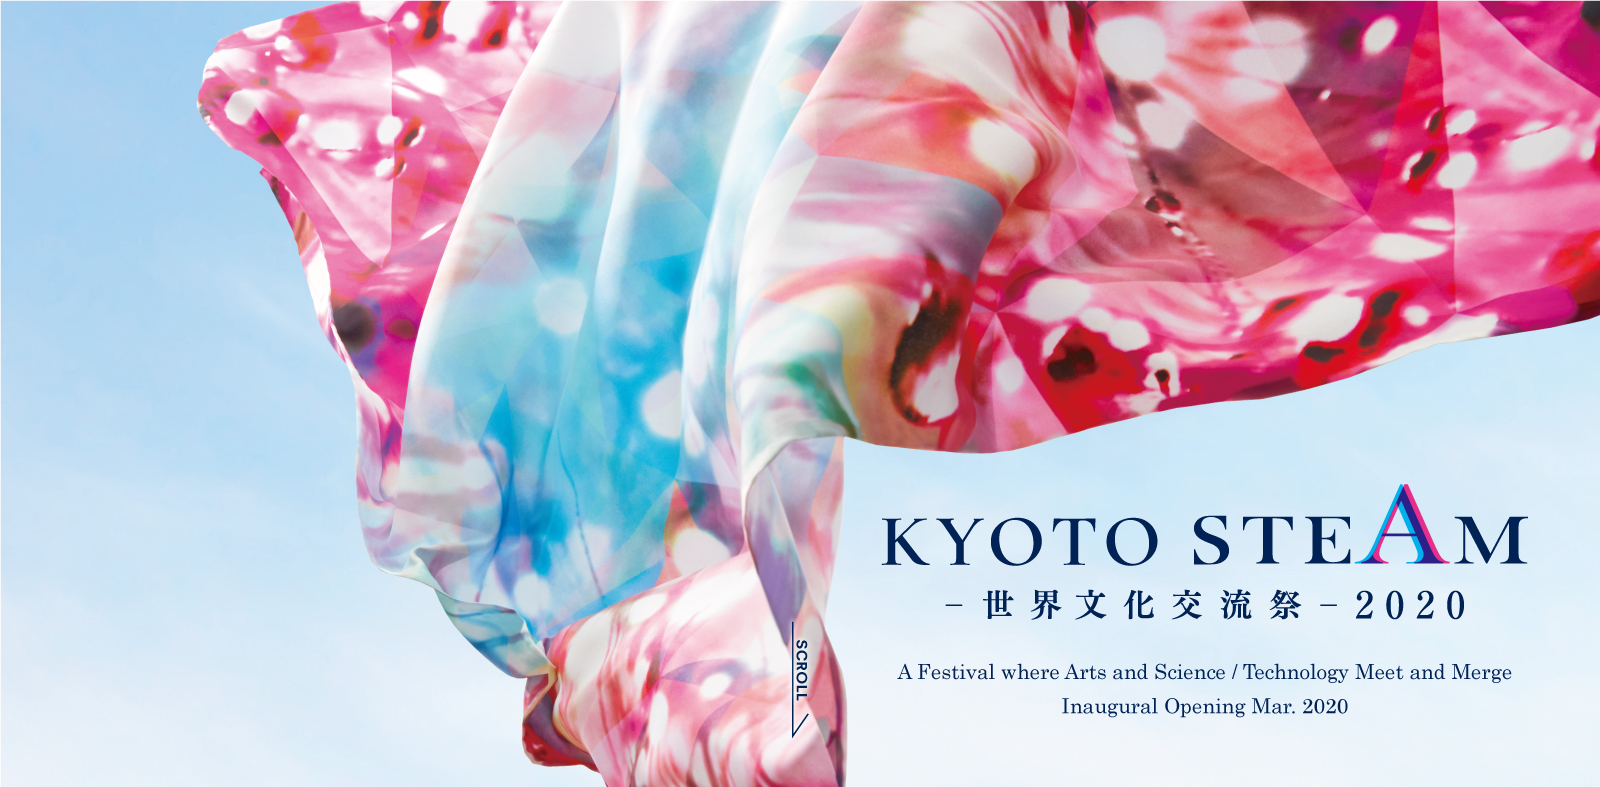 KYOTO STEAM -世界文化交流祭-2020 A Festival where Arts and Science / Technology Meet and Merge. Inaugual Opening Mar.2020